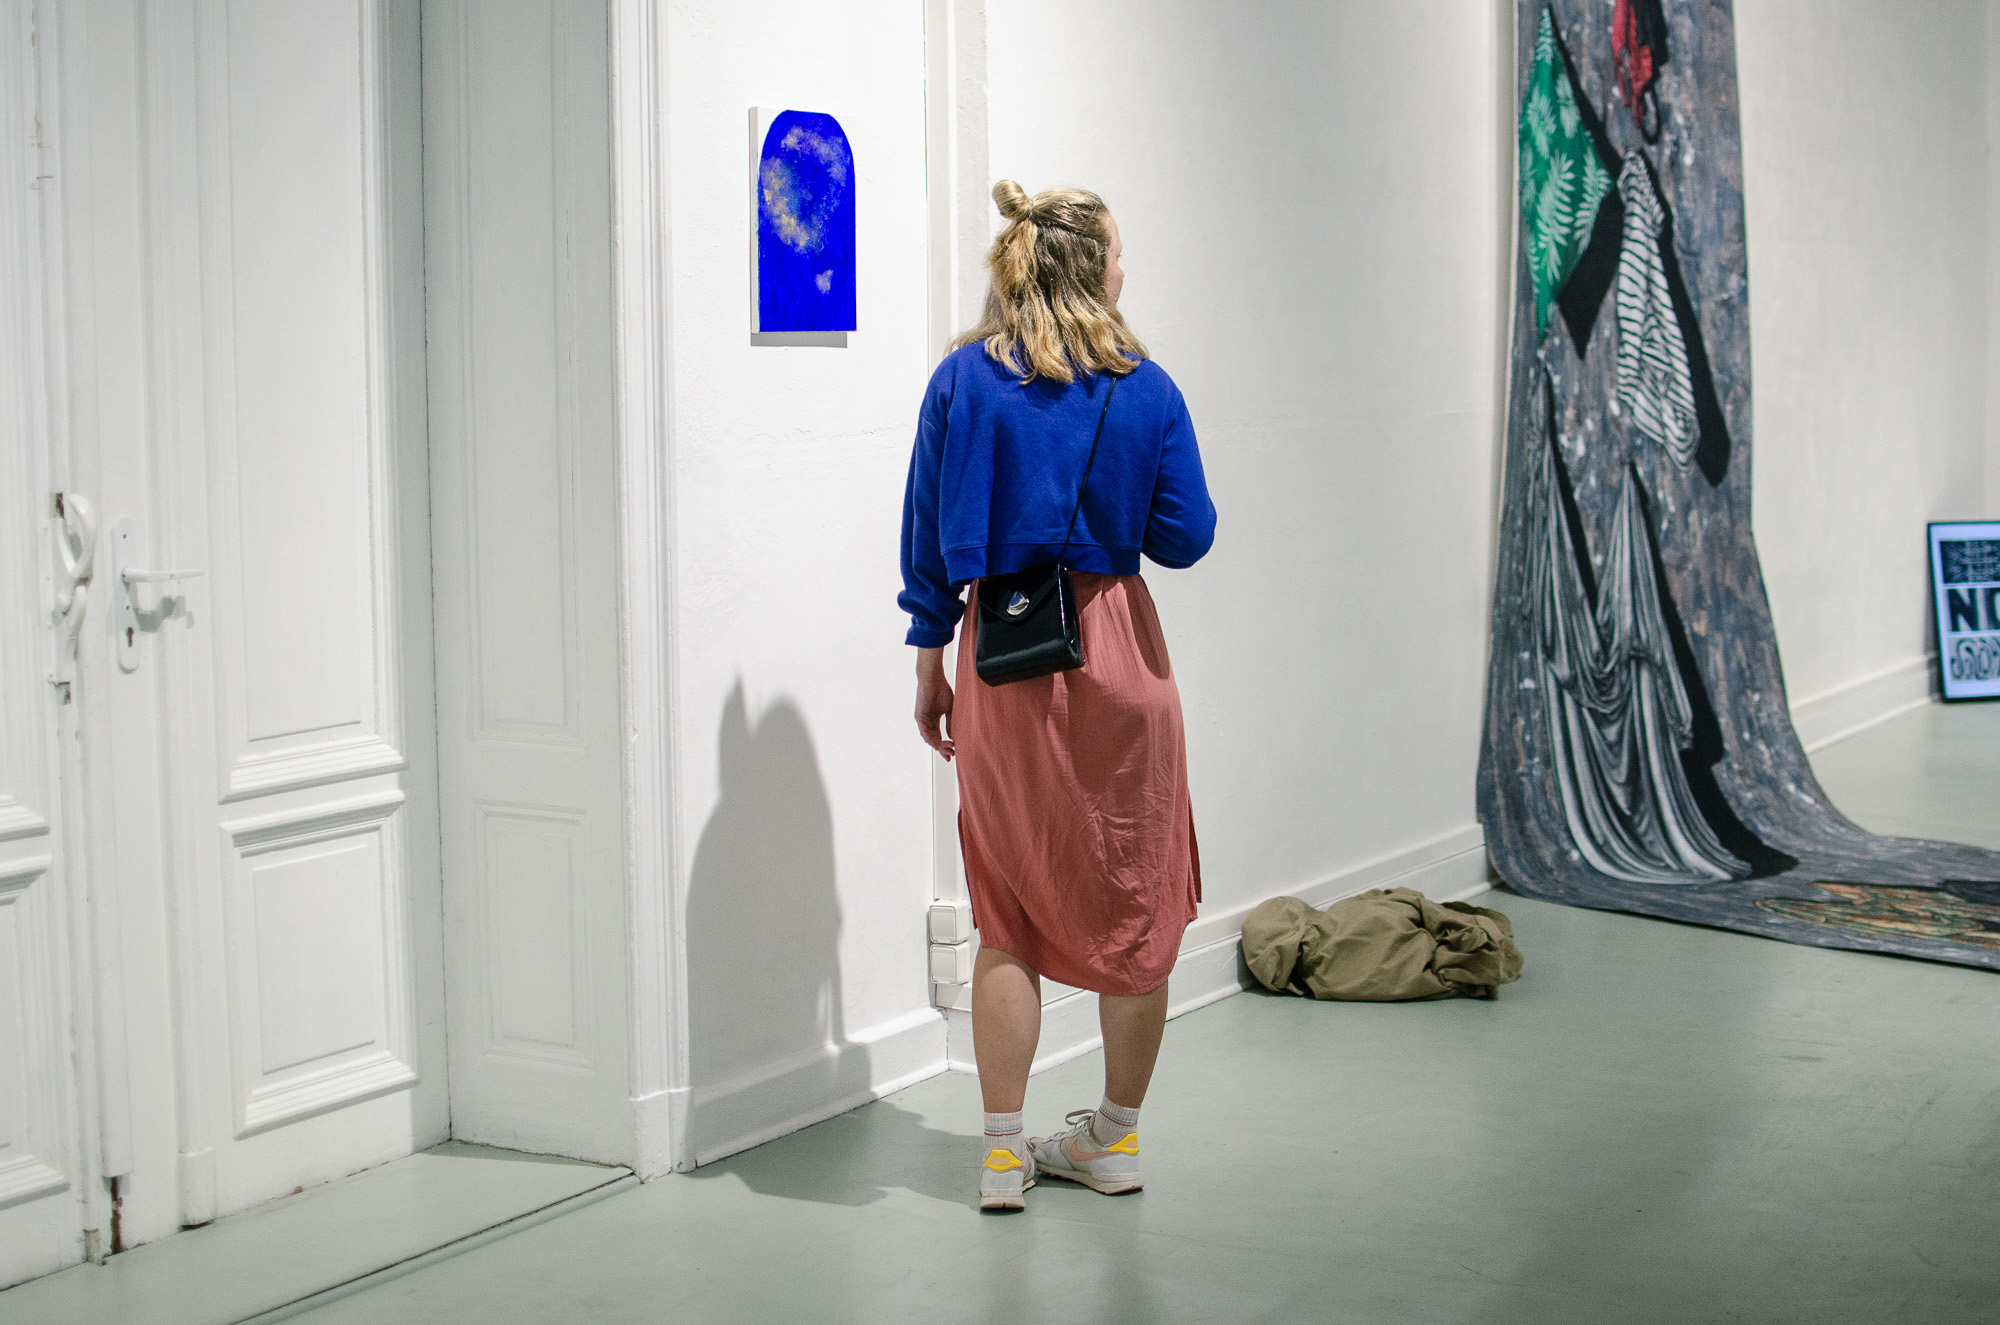 PKRD-48-Airy-Democratic-Spirituality-vernissage-PK-at-Alte-Handlesschule-20.08.21-Fanni-Papp-for-PK-28